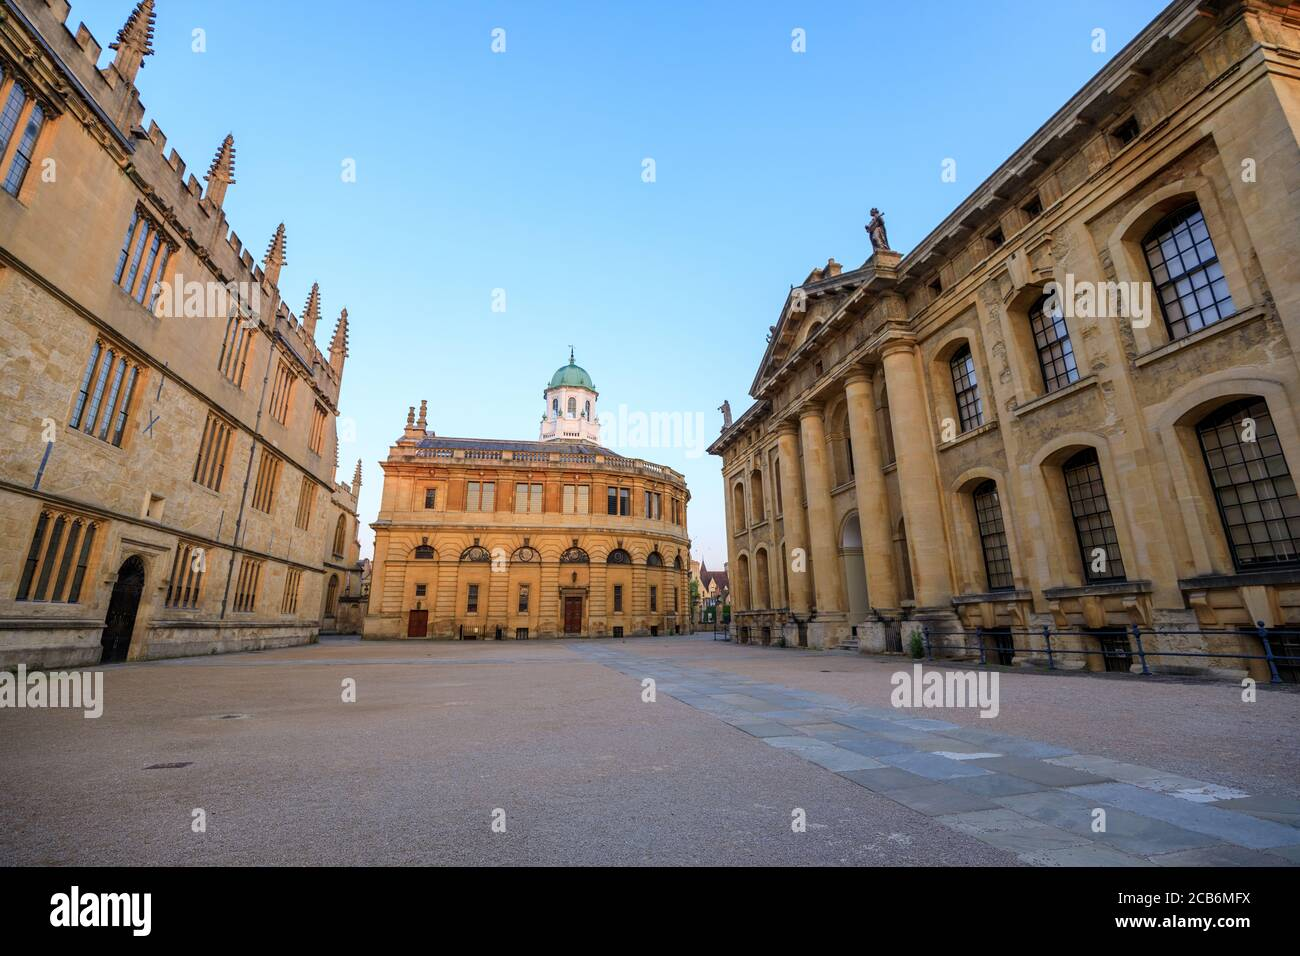 The side of the Sheldonian Theatre and the Clarendon Building with no people around, early in the morning. Oxford, England, UK. Stock Photo